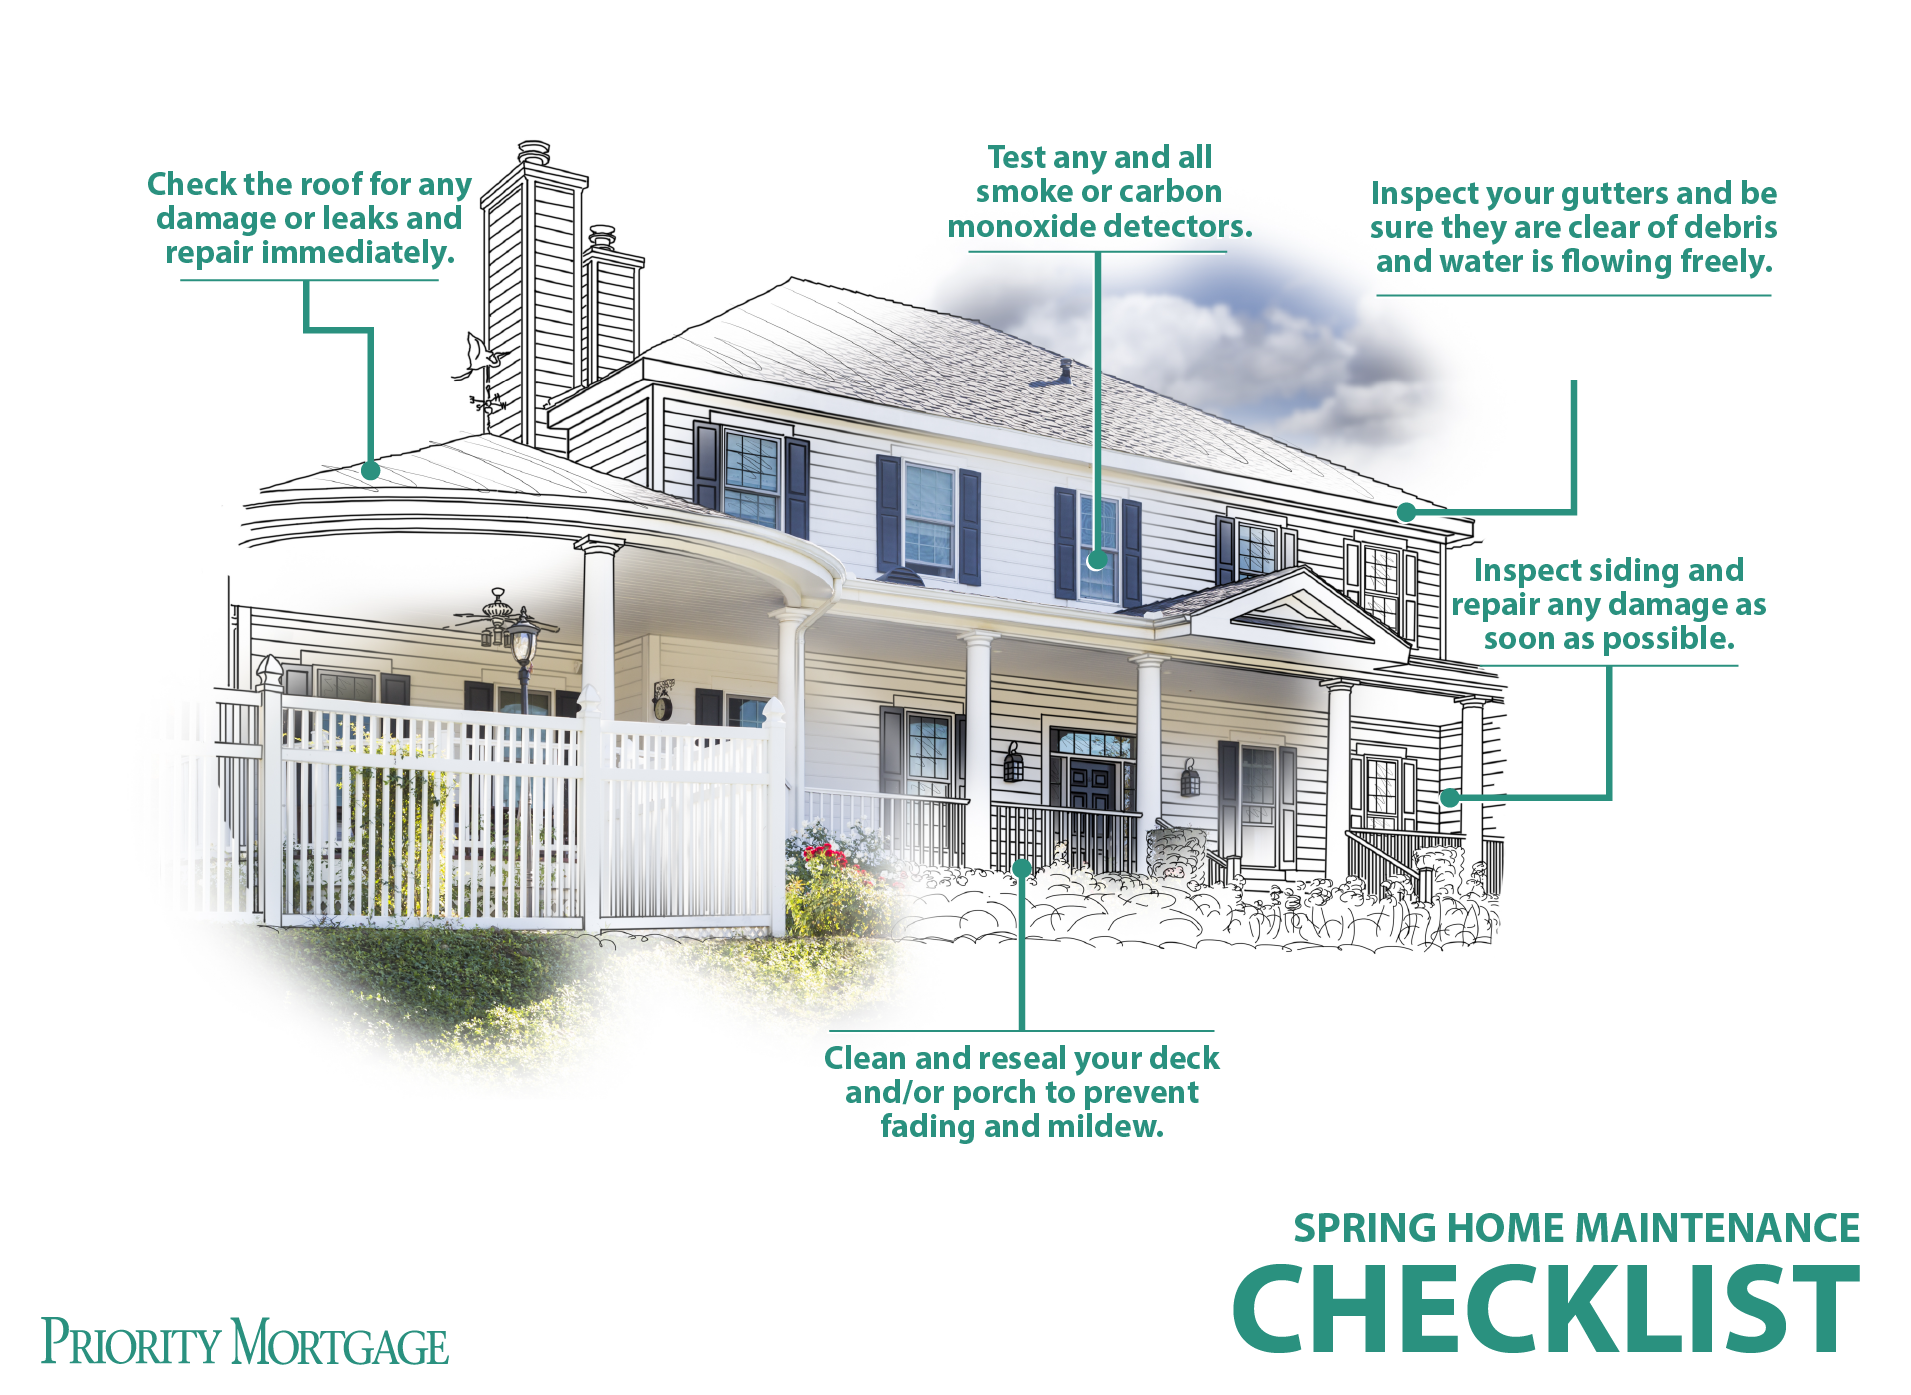 The spring home maintenance checklist priority mortgage corp for Home builders checklist